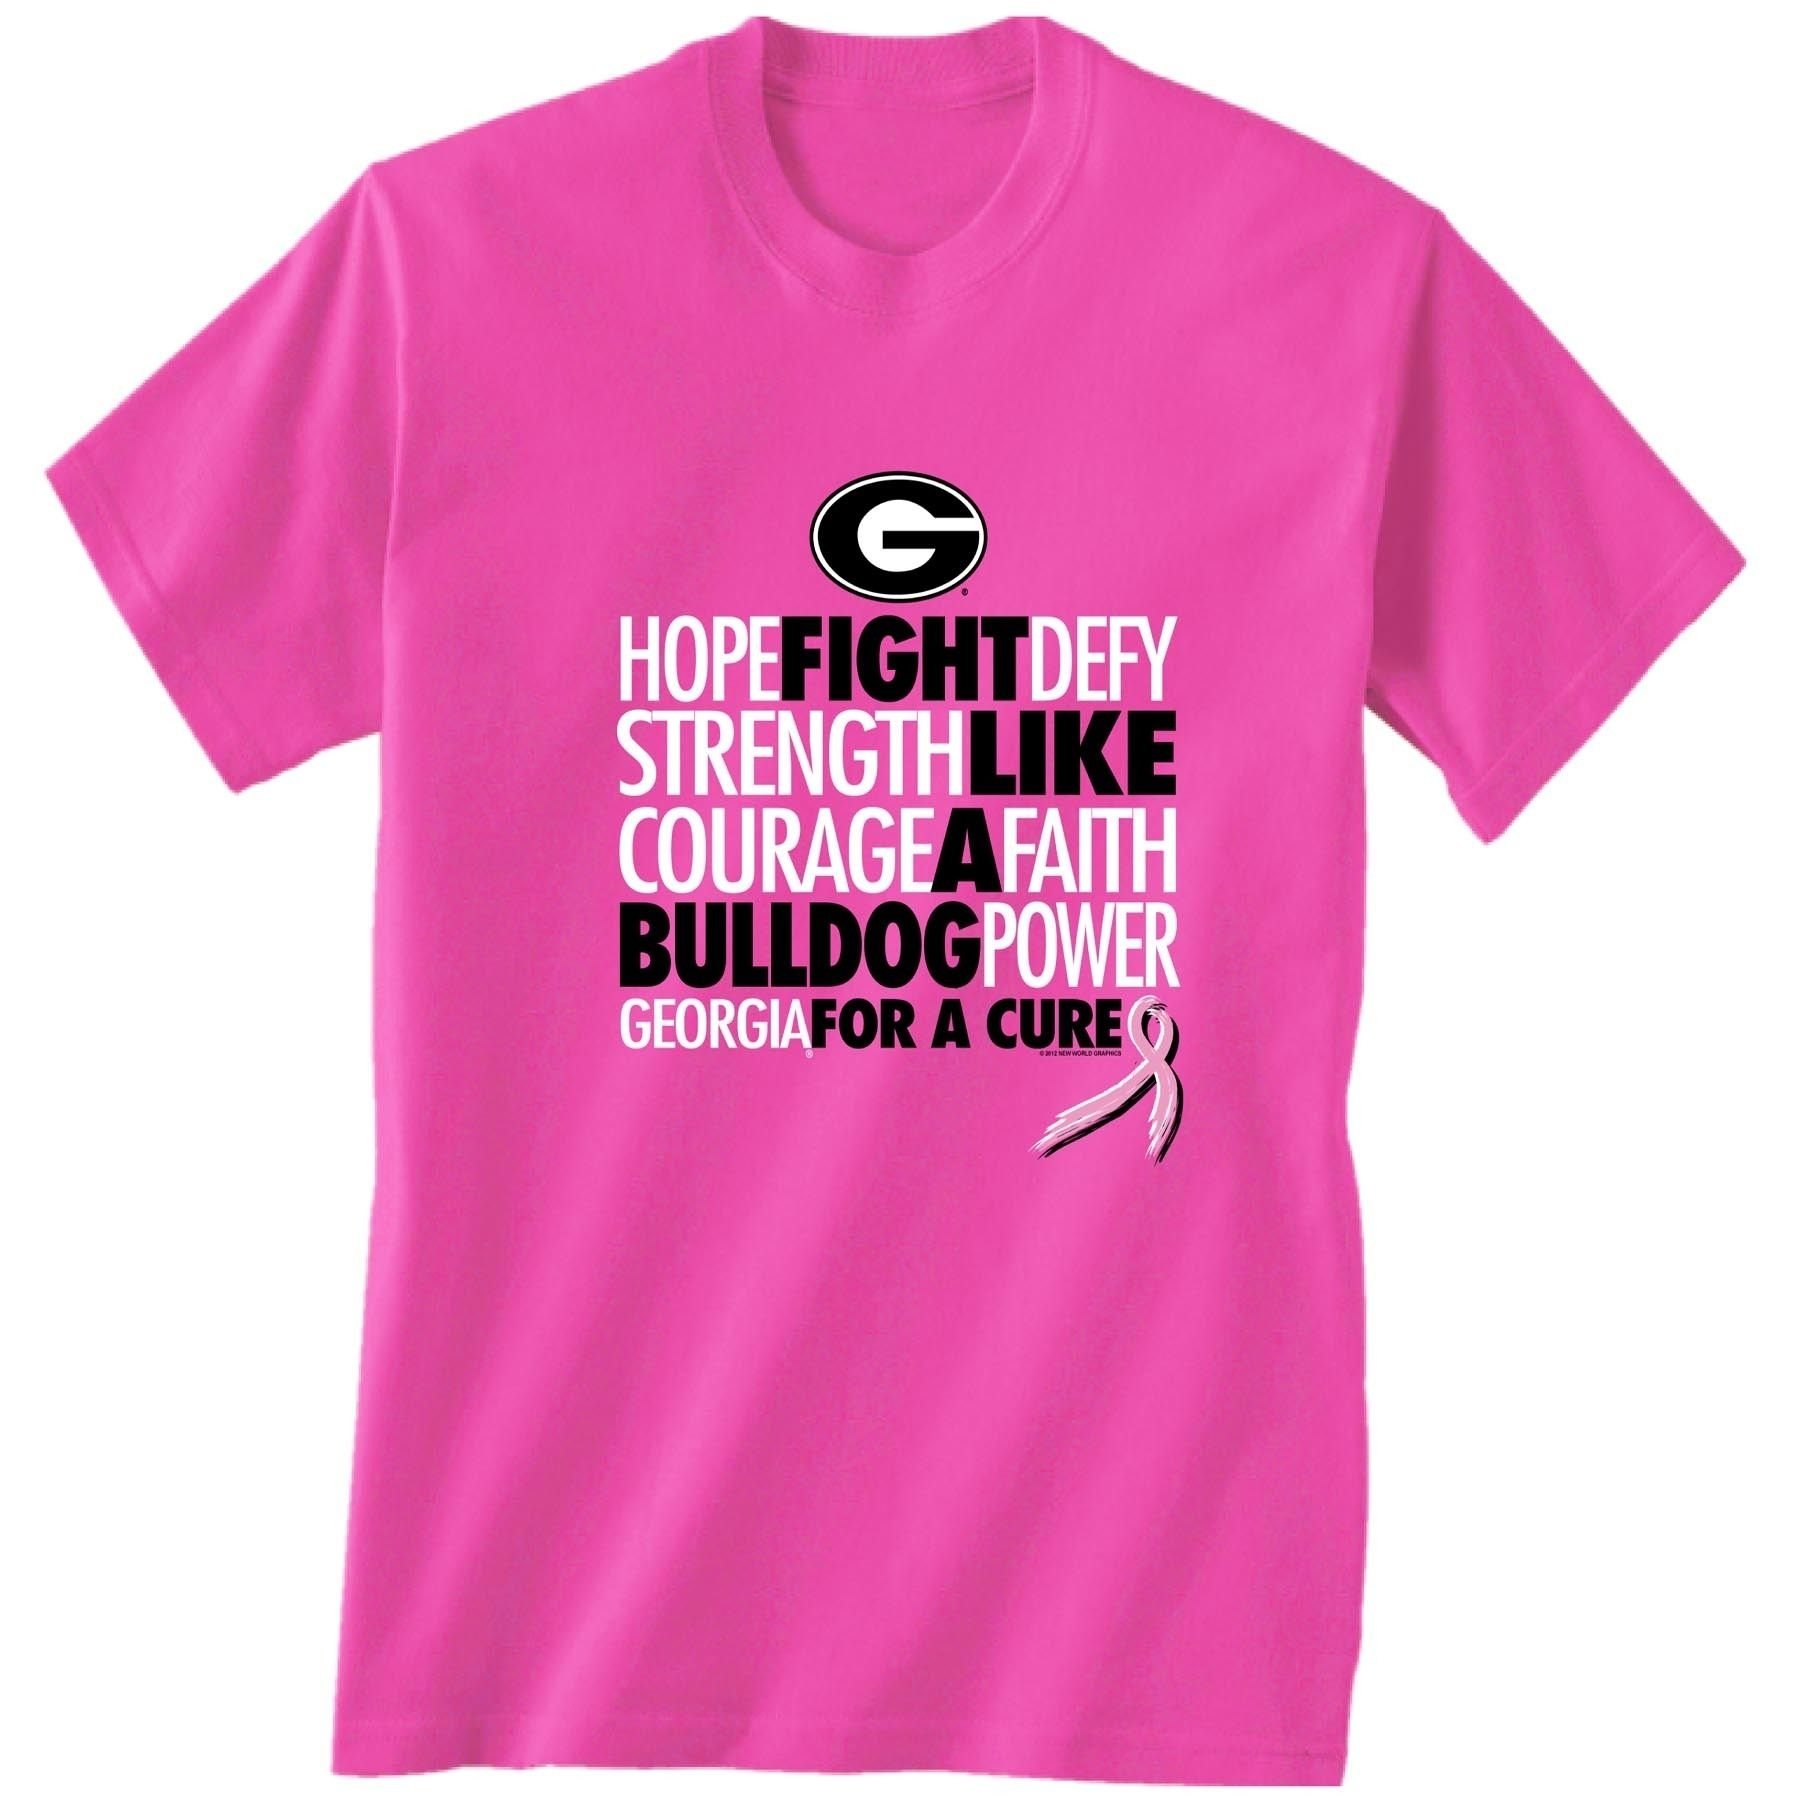 10 Attractive Breast Cancer T Shirt Ideas uga breast cancer t shirt 19 99 30 is flirty pinterest 2020